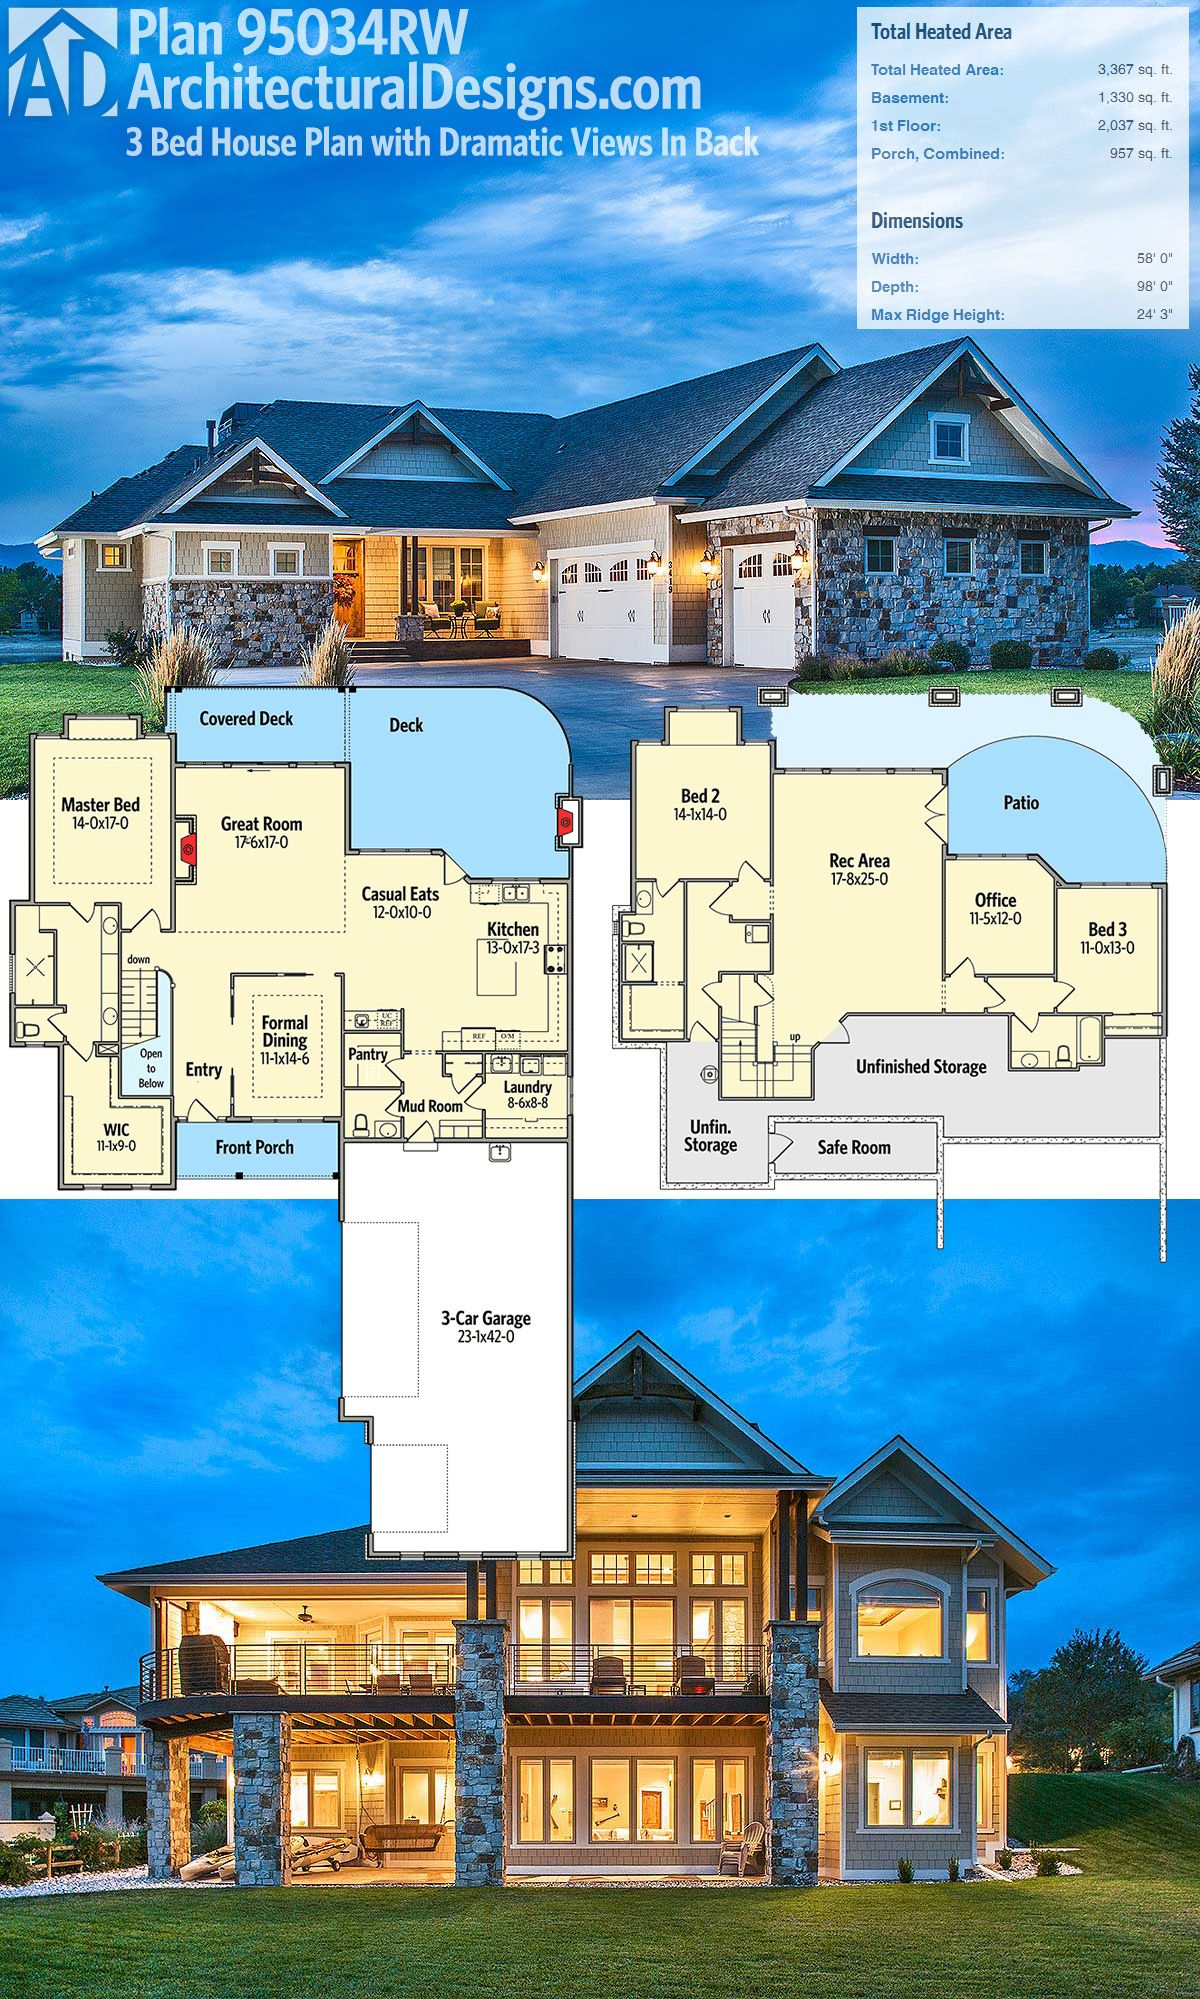 Plan 95034rw Craftsman House Plan With Dramatic Views In Back Craftsman House Plans Architectural Design House Plans Lake House Plans